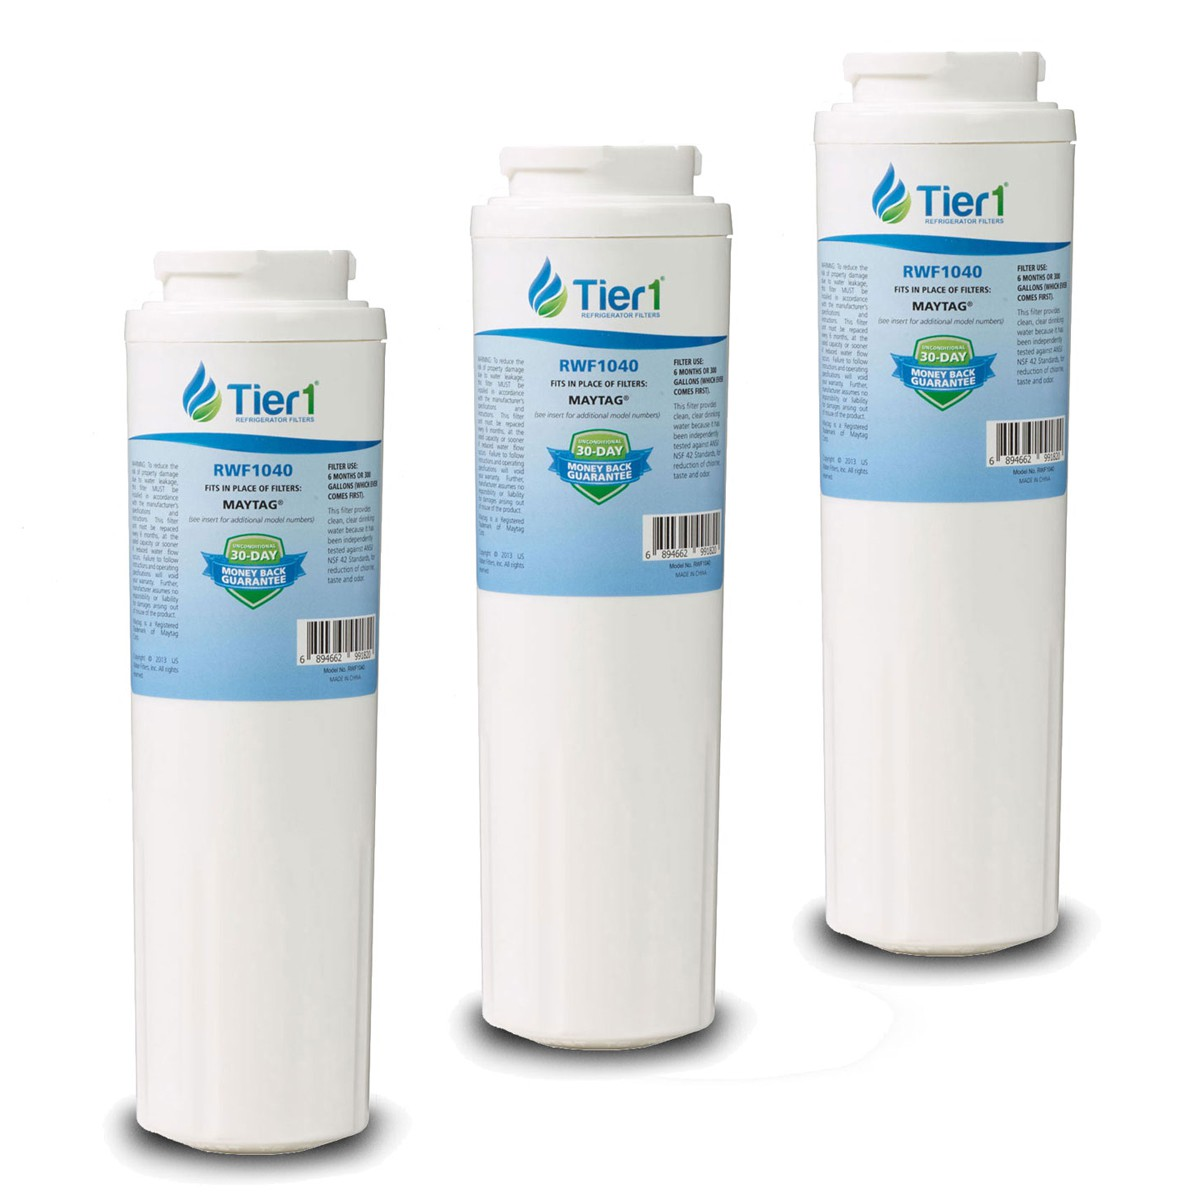 Ukf8001axx Replacement Refrigerator Water Filter By Tier1